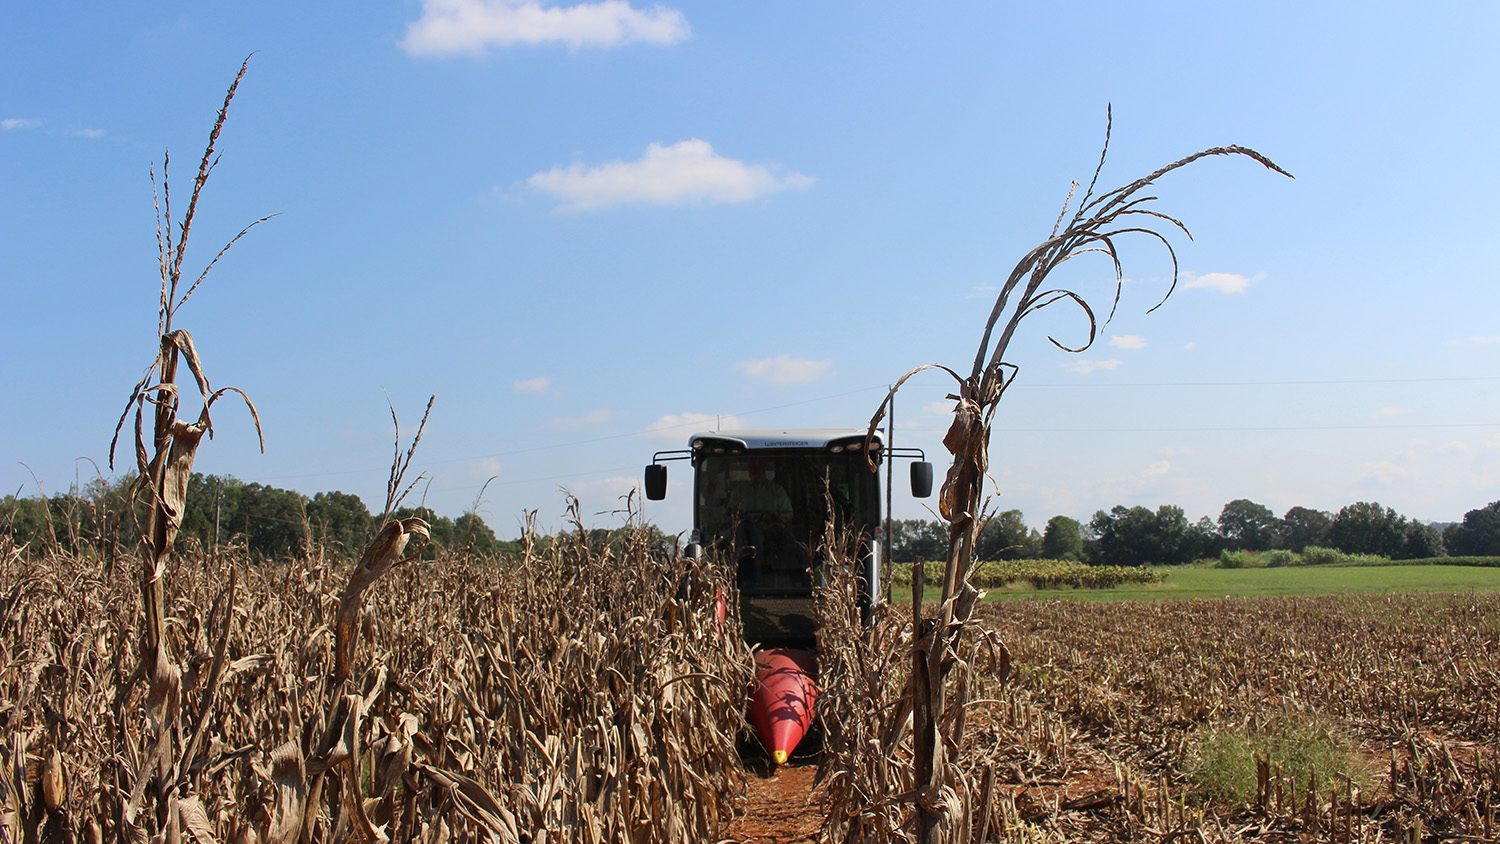 Small combine harvesting corn